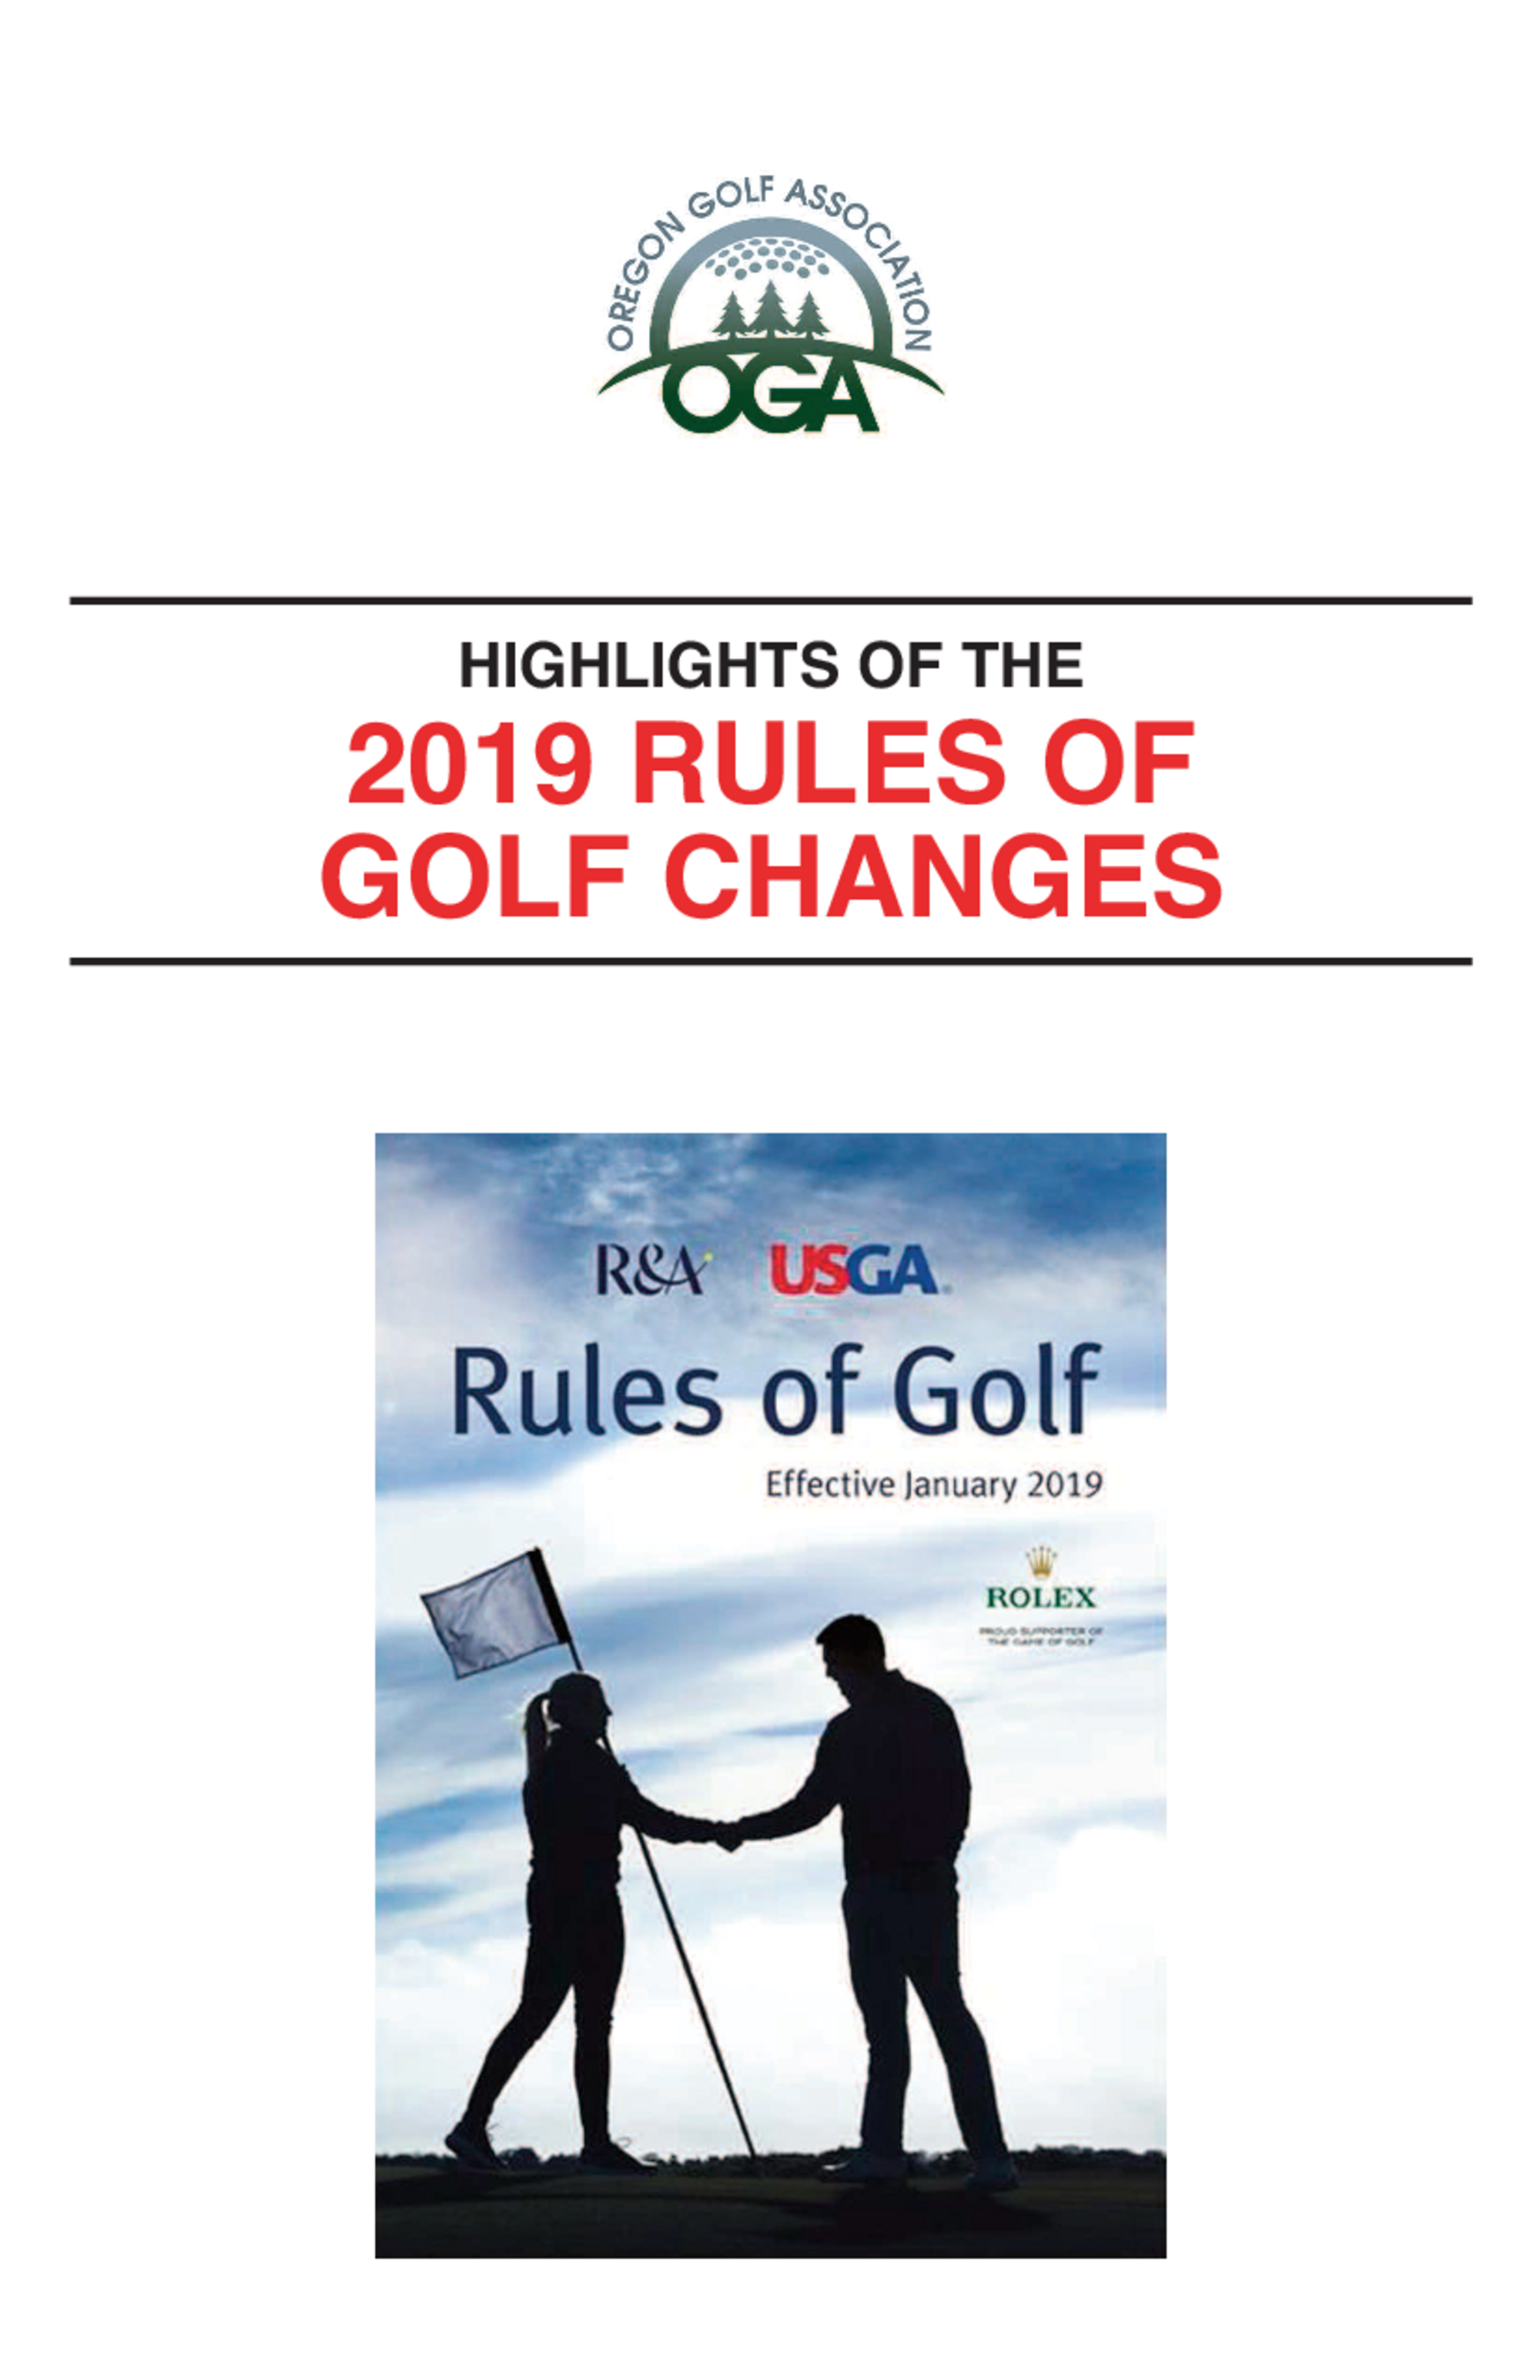 Oga rules highlights booklet  002  1